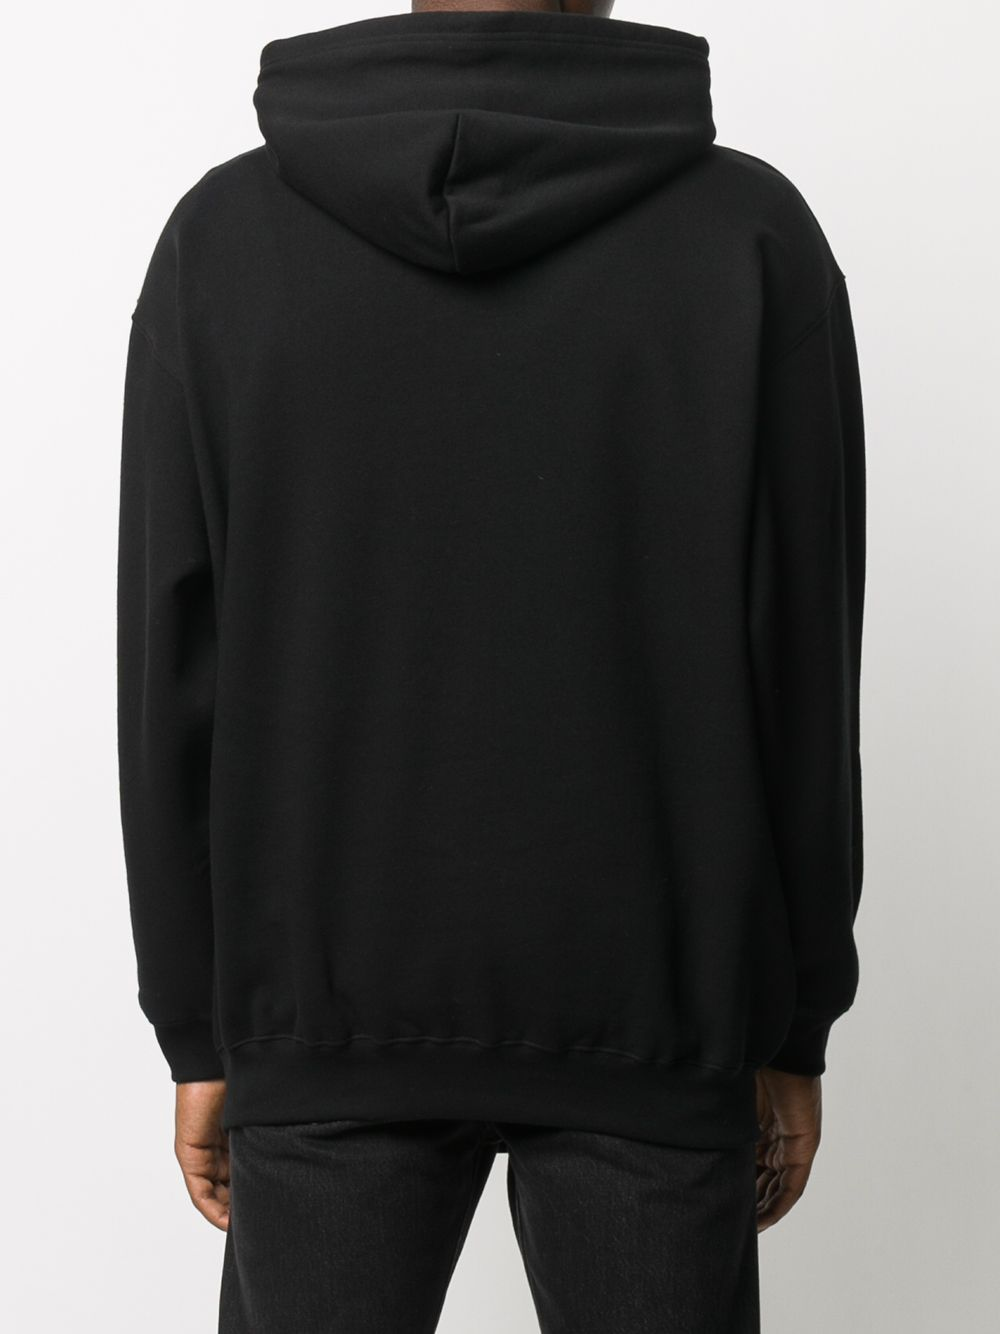 Black cotton hoodie featuring drawstring hood and white Balenciaga logo BALENCIAGA |  | 570811-TJVE11034